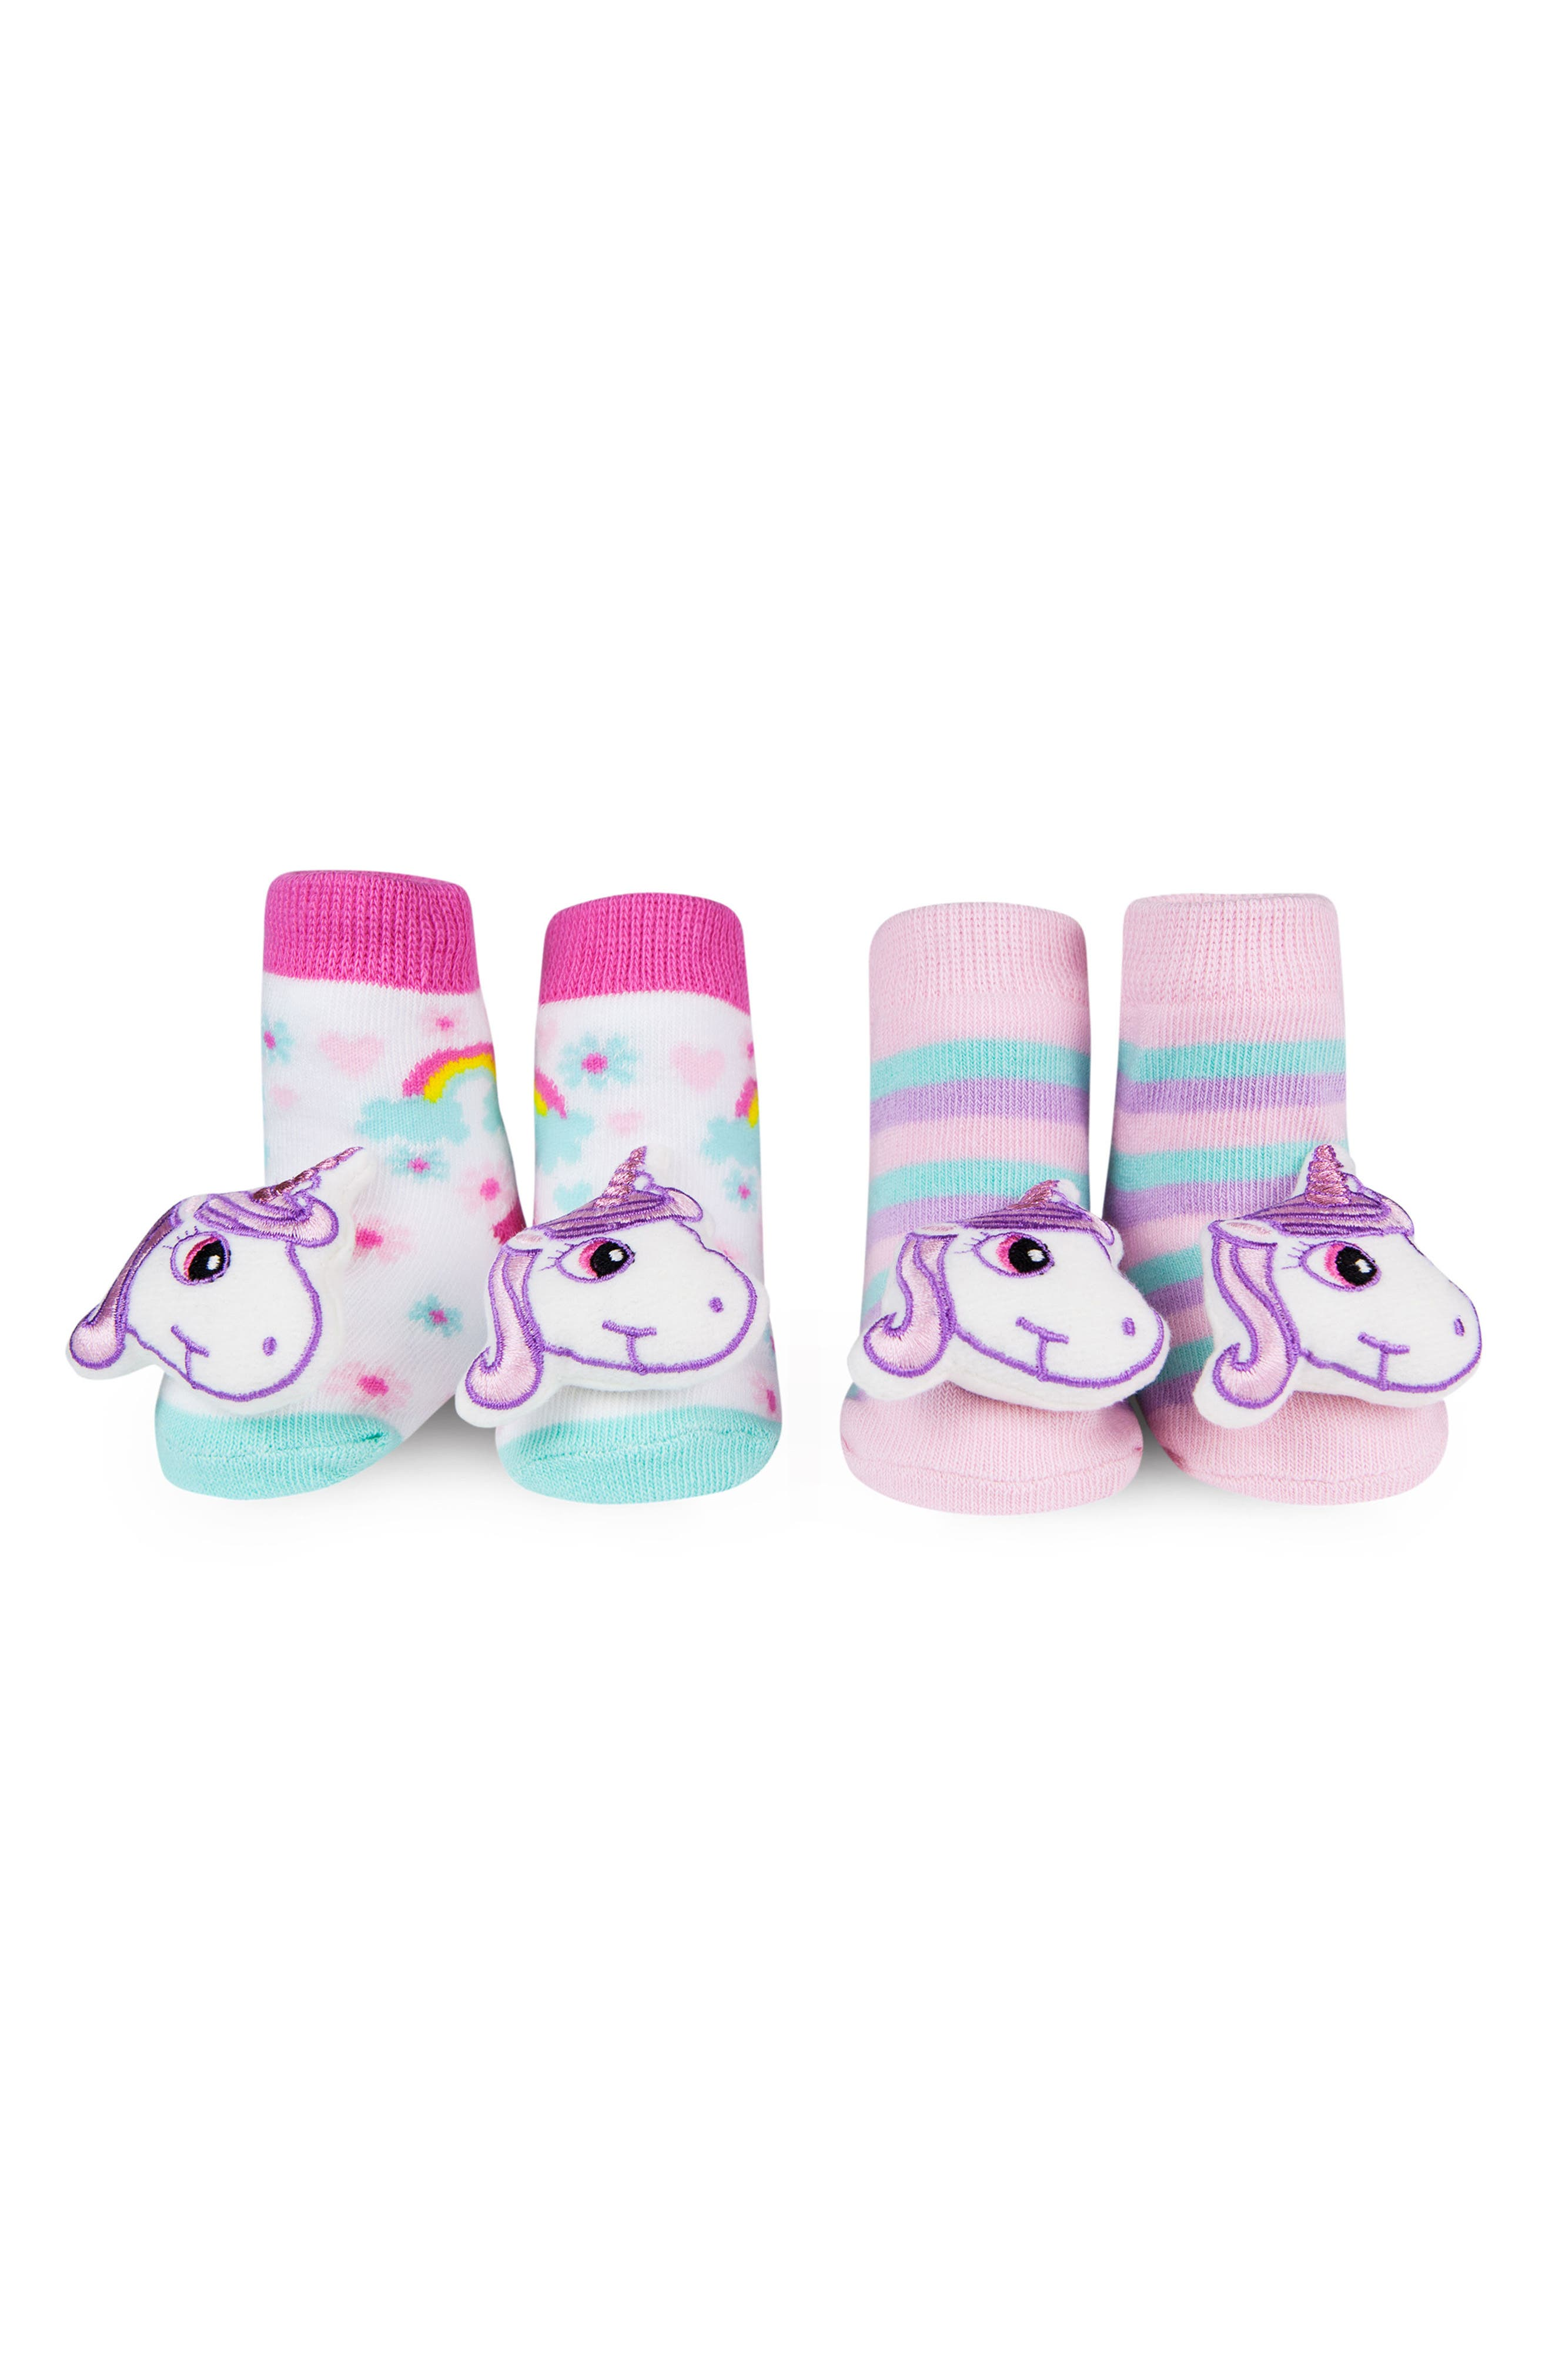 & Friends 2-Pack Unicorn Rattle Socks,                             Main thumbnail 1, color,                             Pink/ White